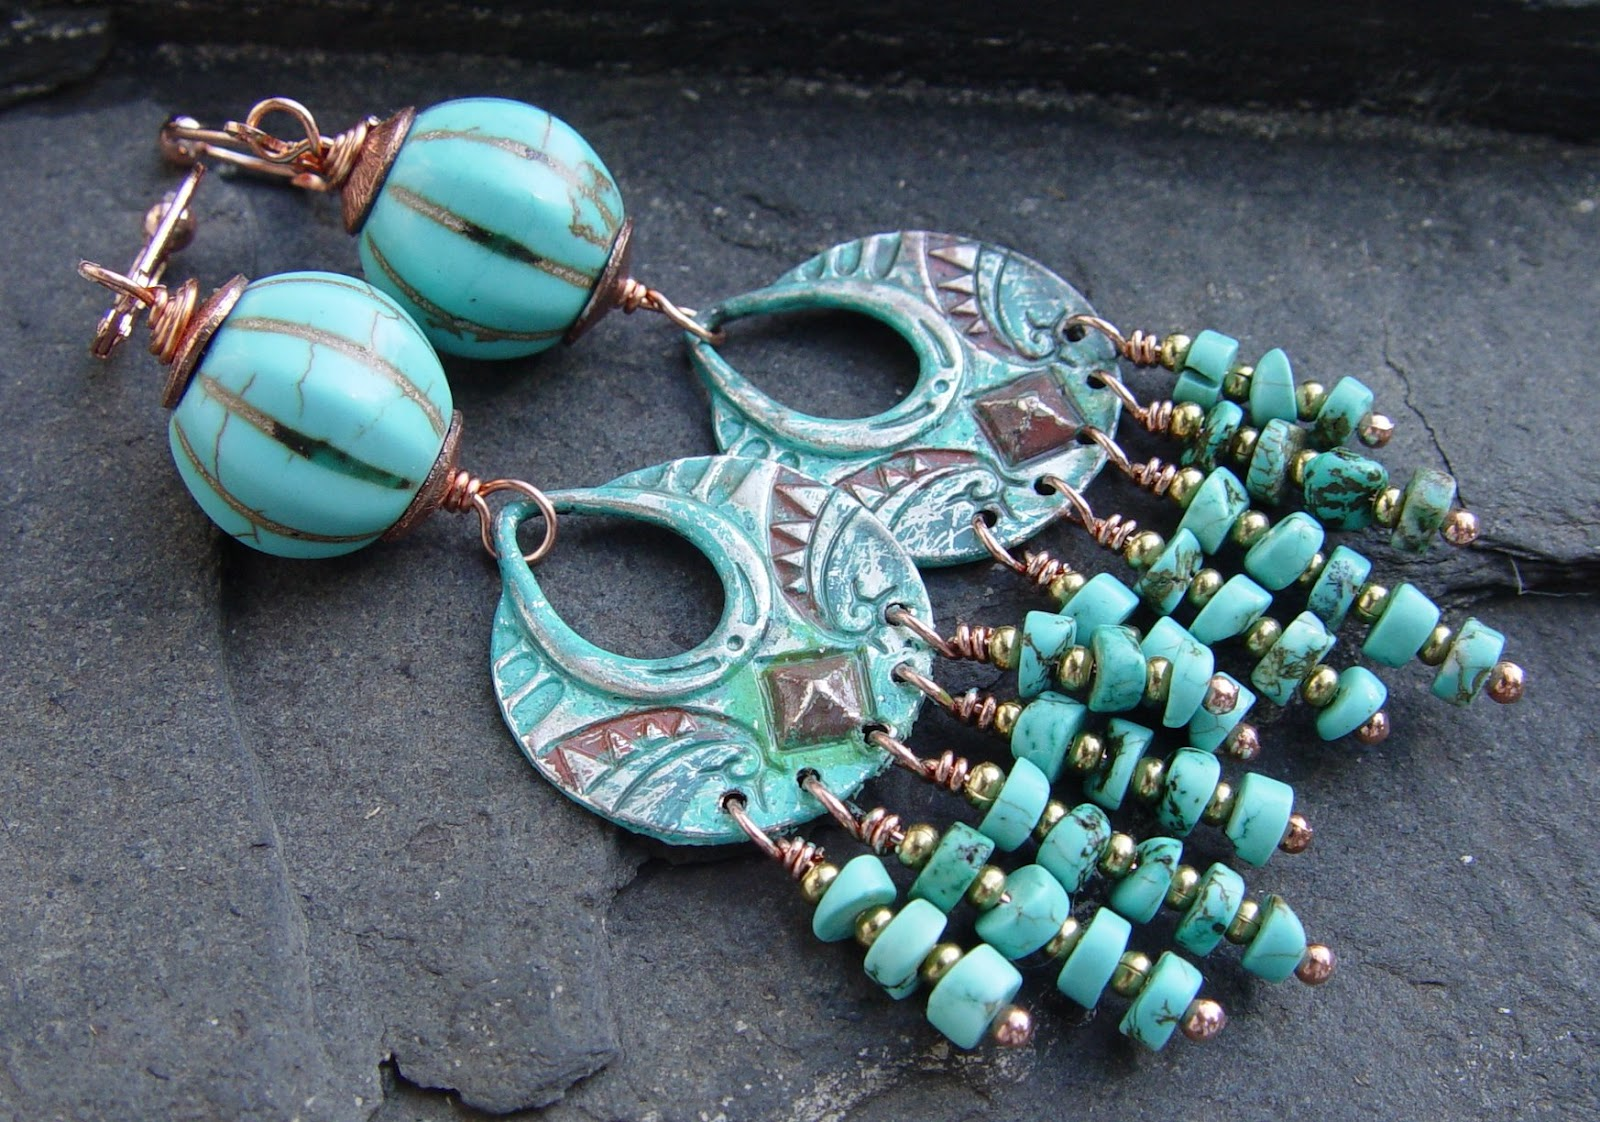 Handcrafted artisan jewelry : Jean a wells handcrafted artisan jewelry gypsy earrings